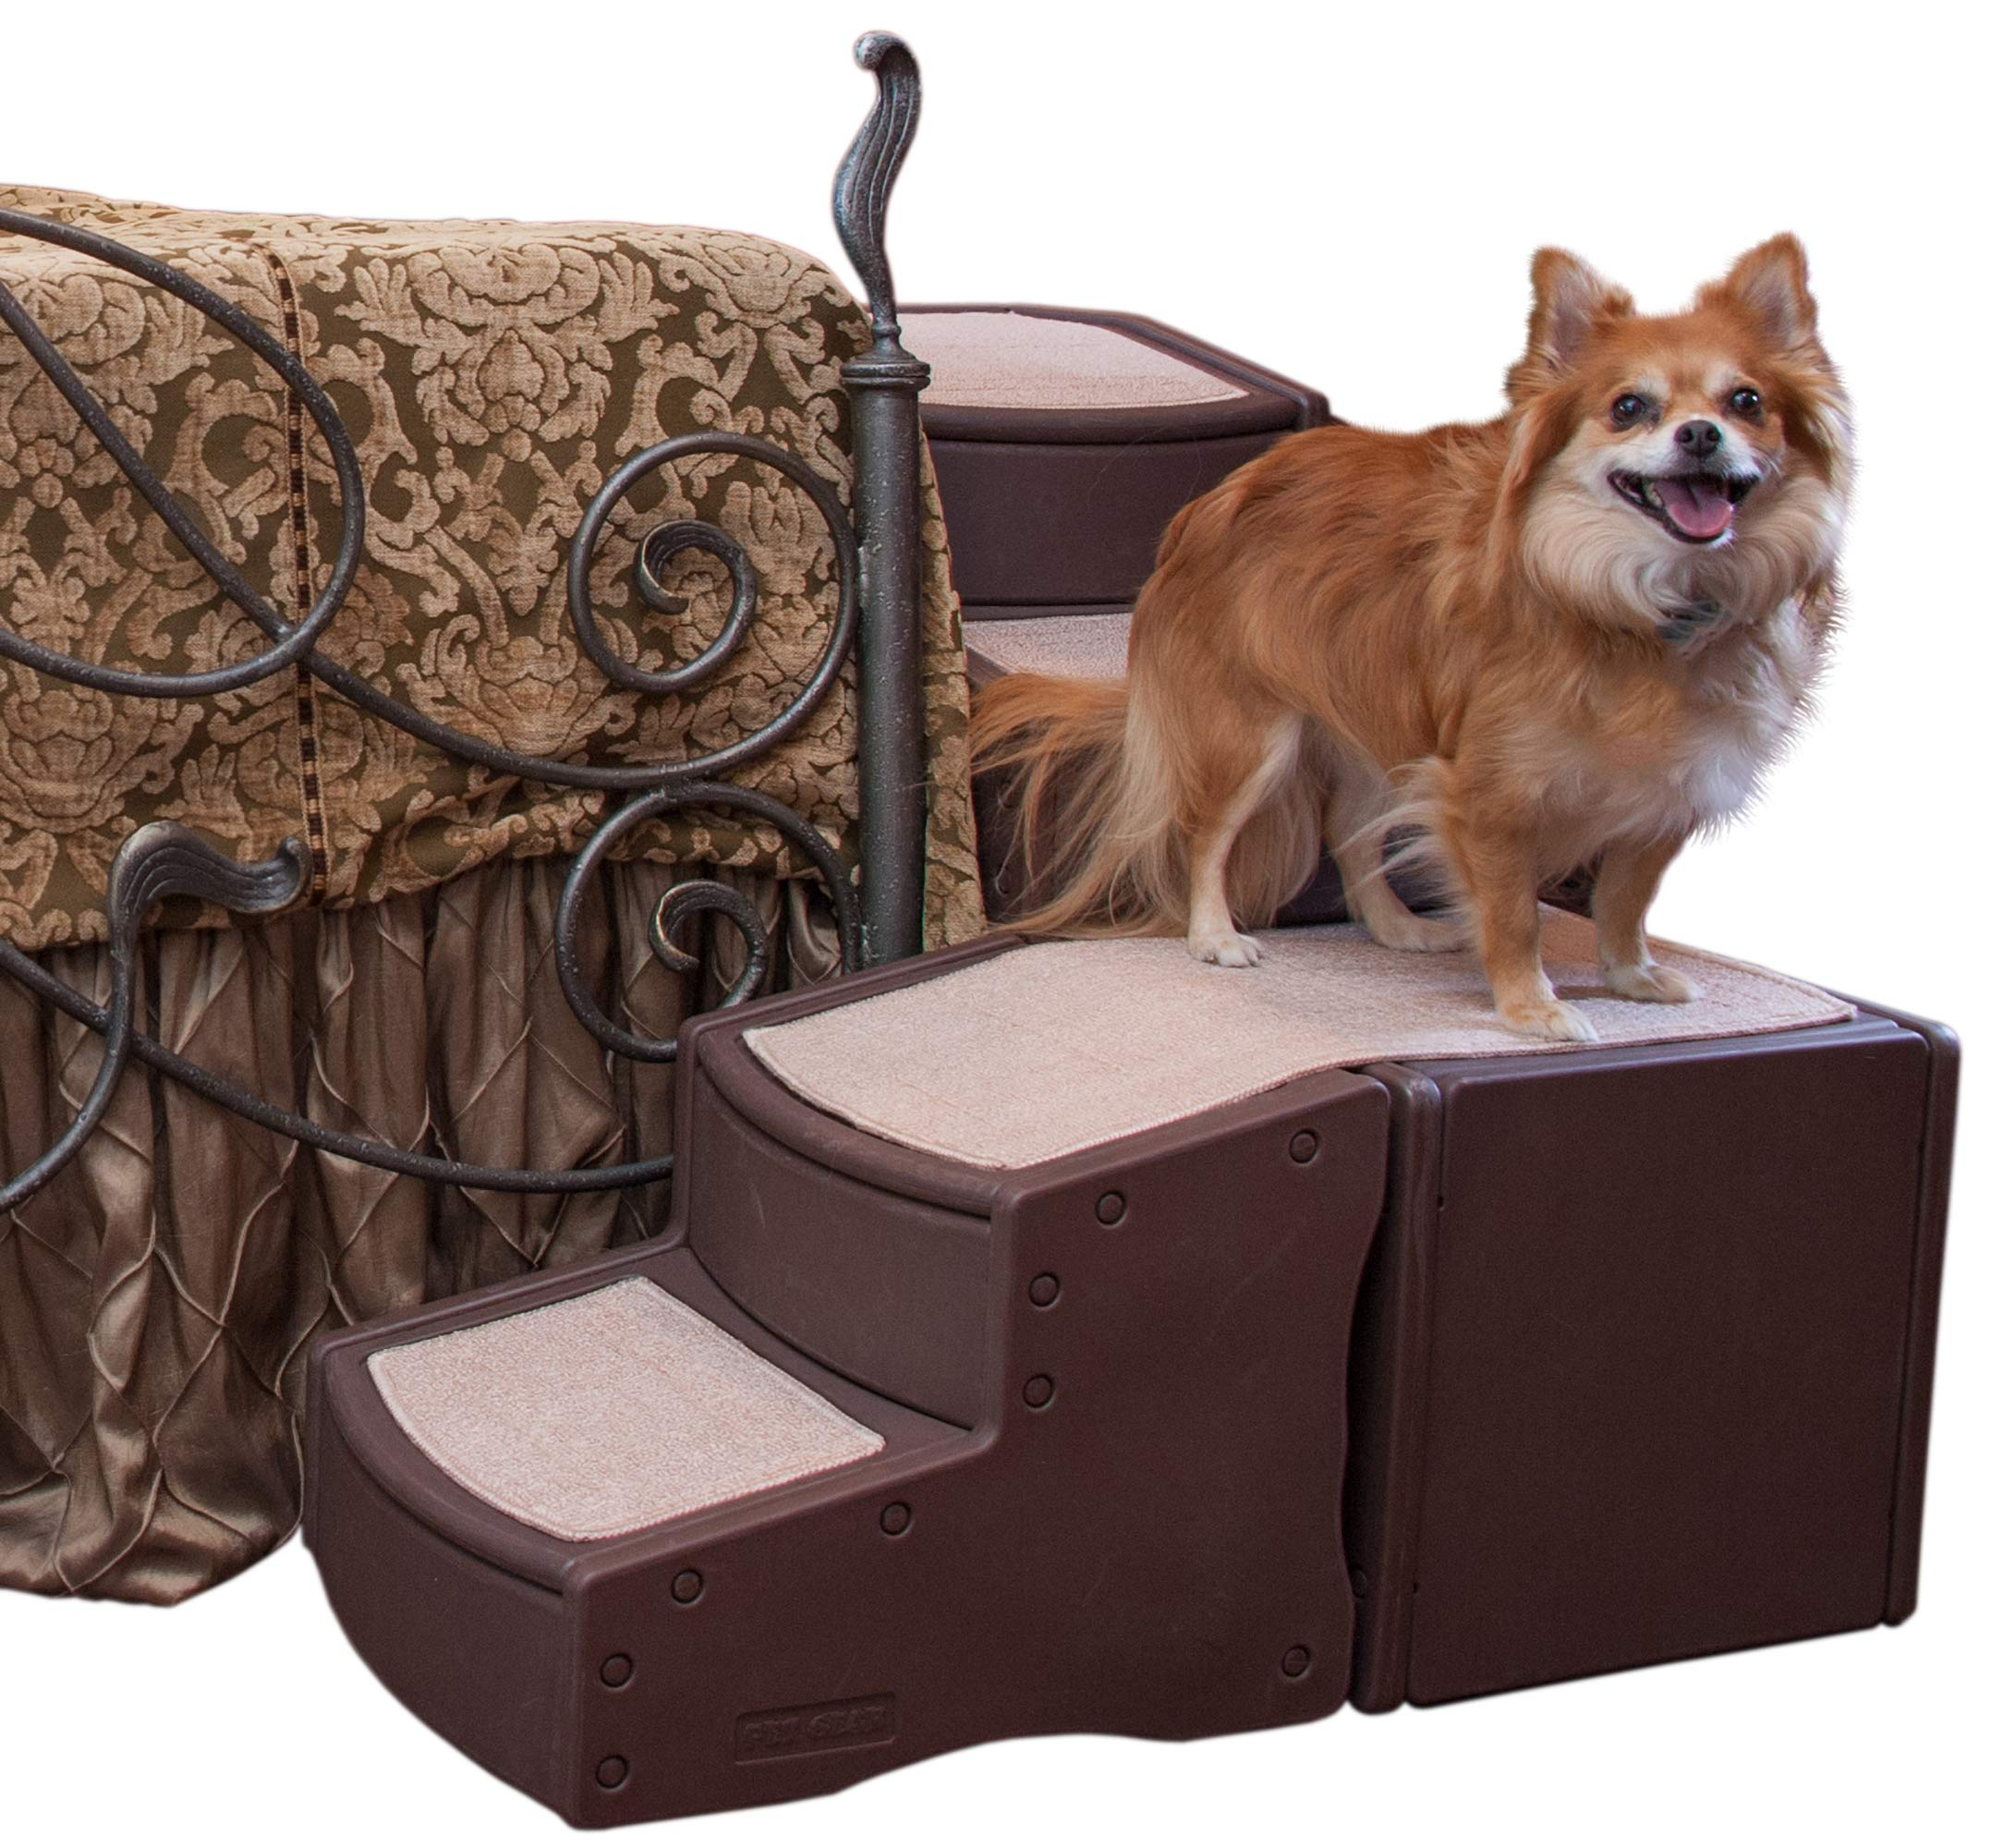 Pet Gear Easy Step Bed Stair for Cats/Dogs with Storage Compartment, Removable Washable Carpet Treads, Space-Saving Multi-Position Design by Pet Gear